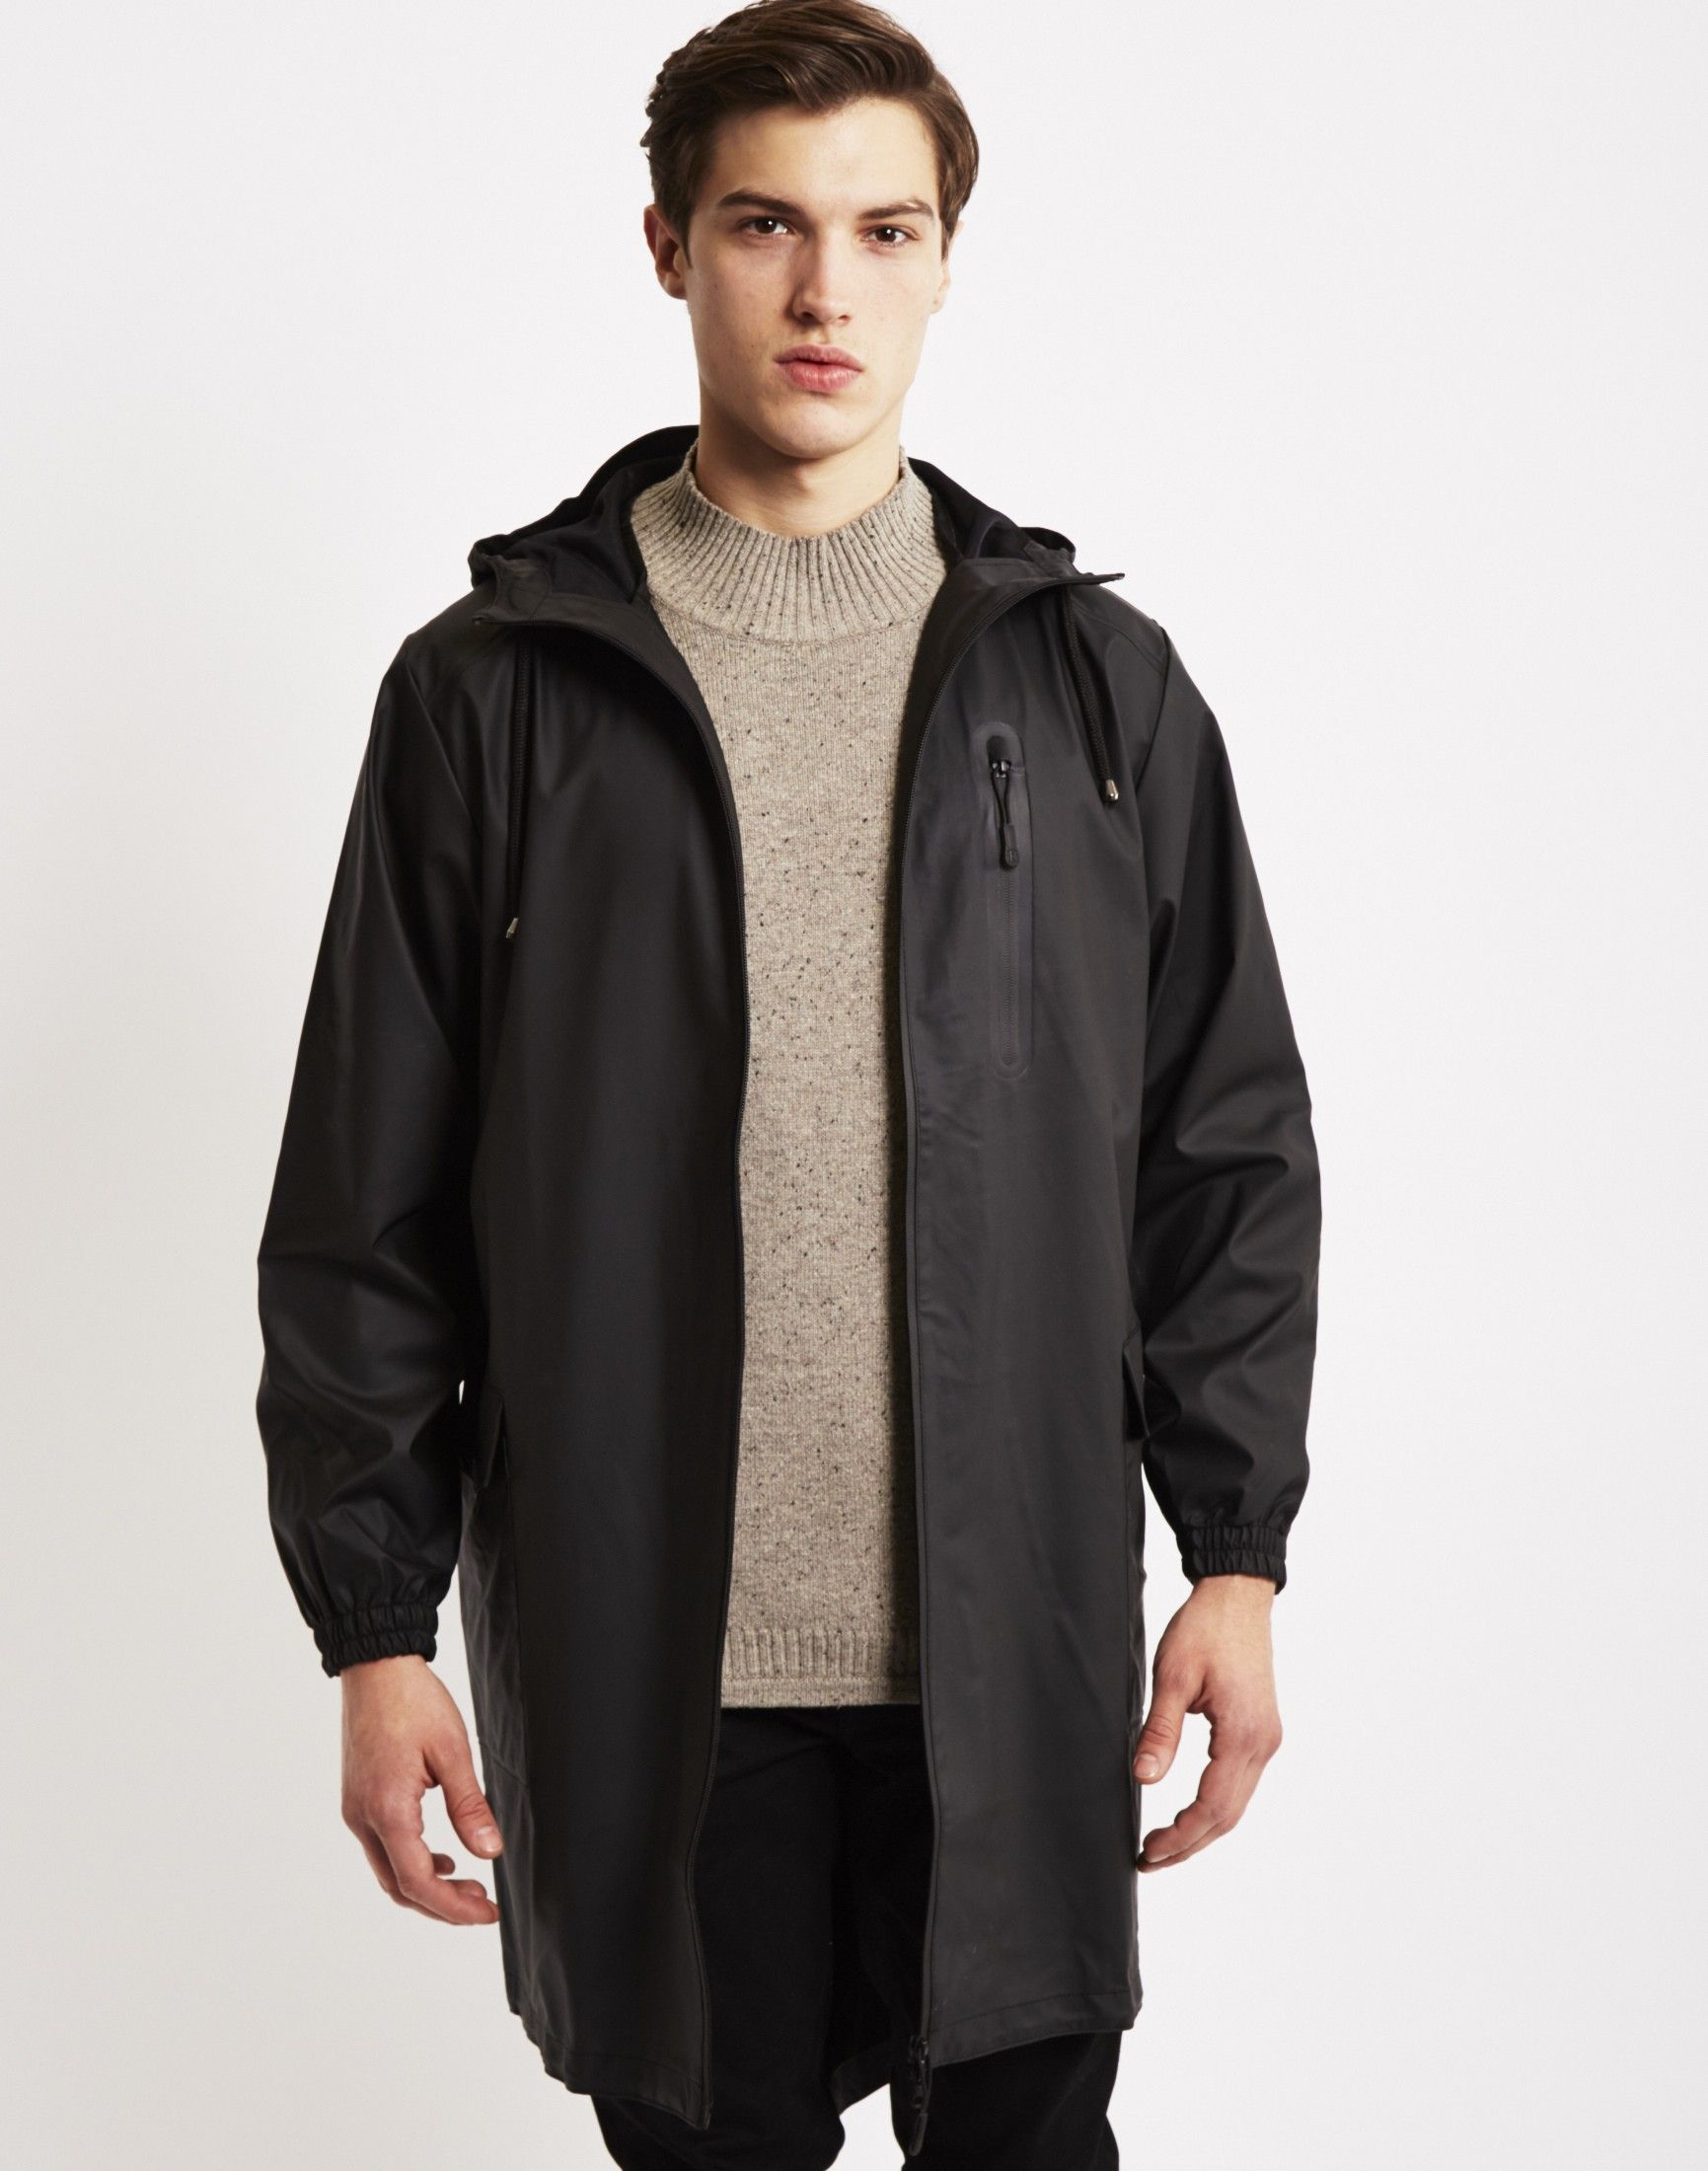 Get Autumn/Winter ready with this great buy from The Idle Man ...